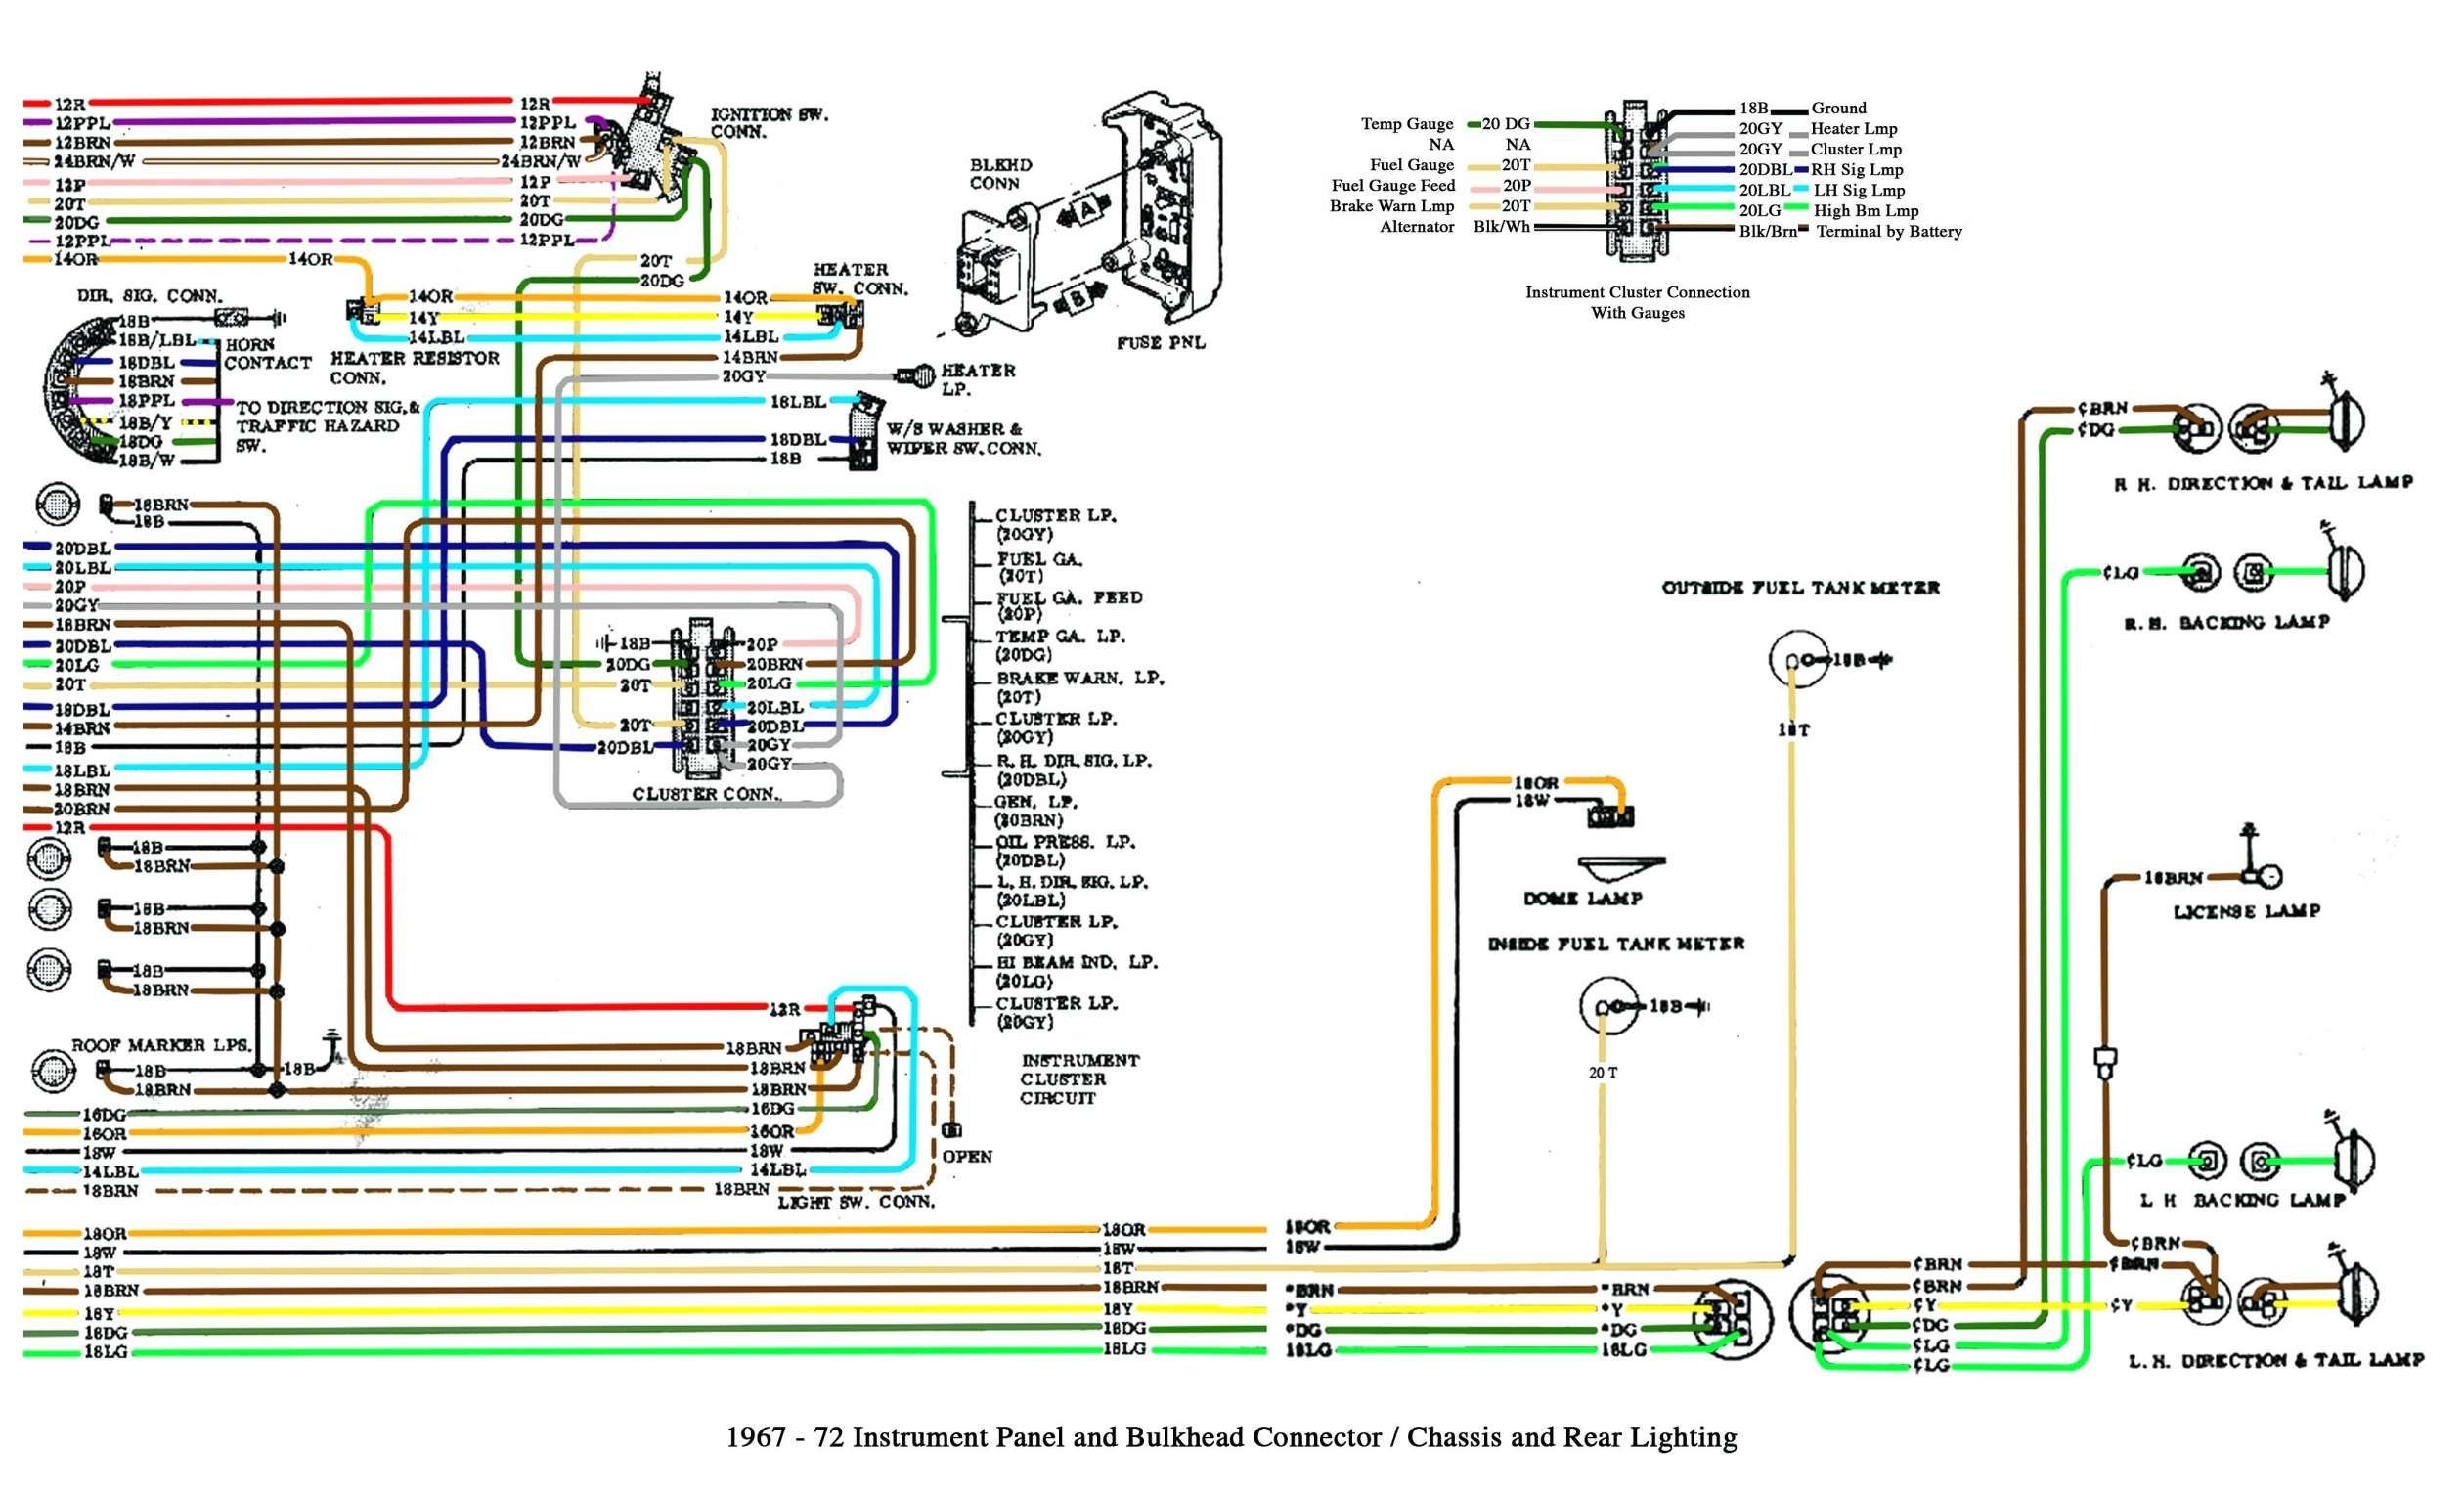 1964 Chevy Truck C10 Wiring Diagram And Chevy Truck Wiring Schematic Schematics Online 72 Chevy Truck Chevy Trucks Truck Stereo